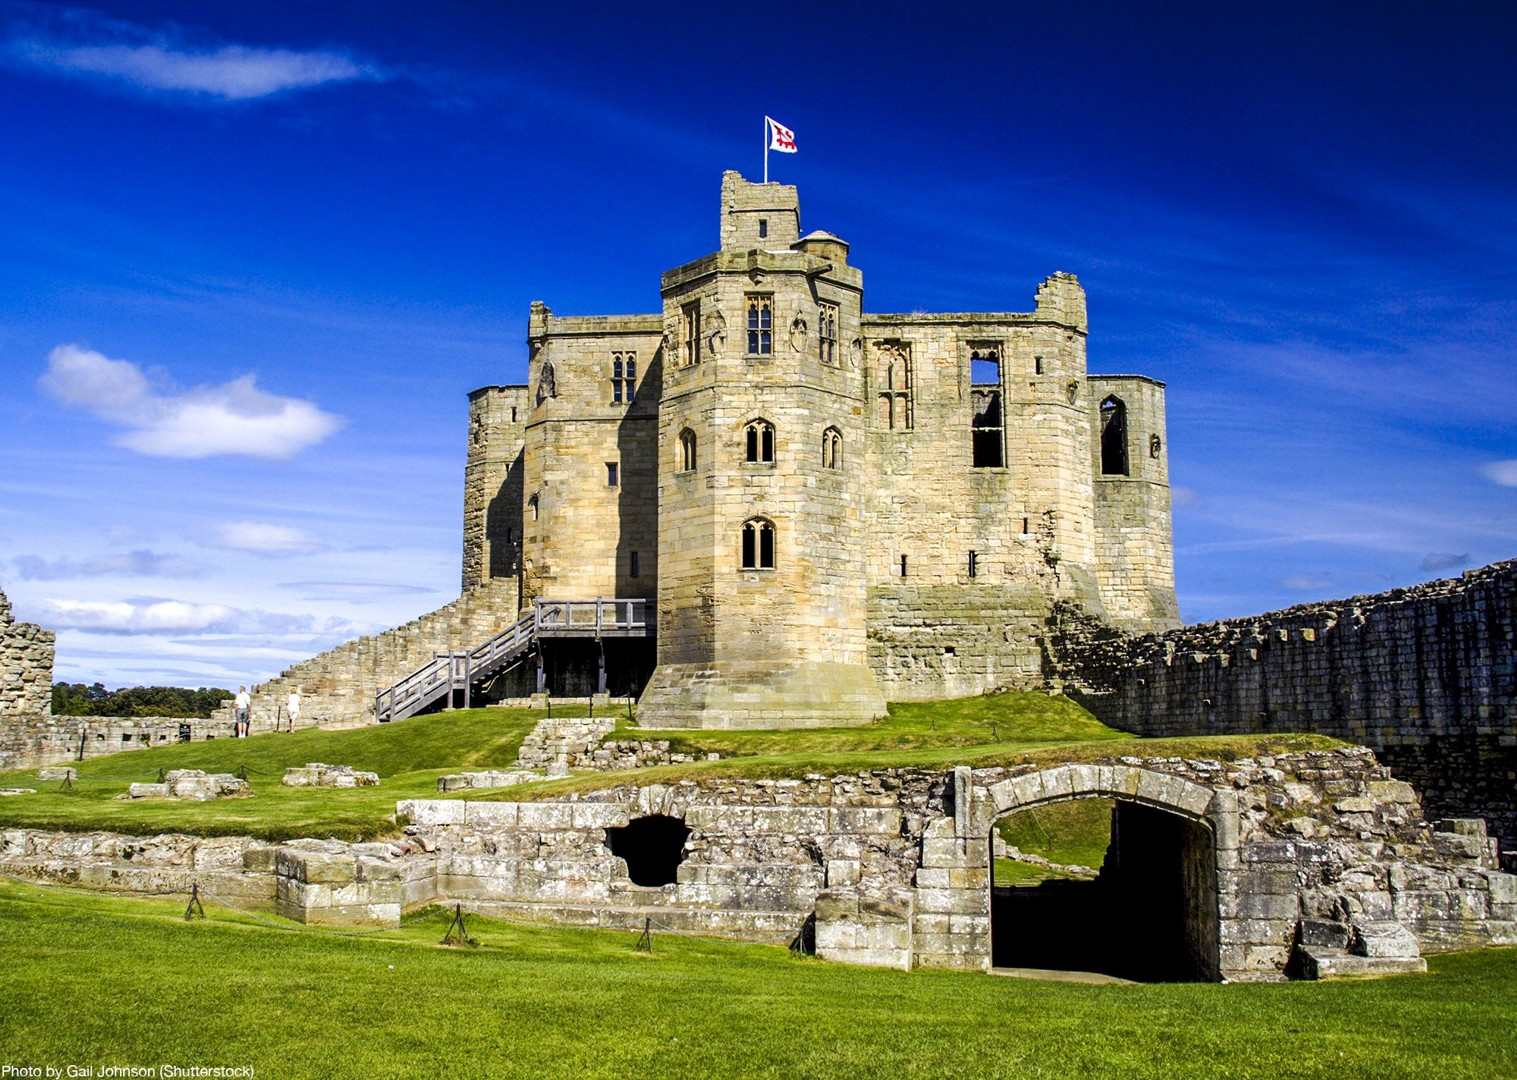 uk-traditional-castles-bamburgh-dunstanburgh-newton-by-the-sea-cycling-holiday.jpg - UK - Coast and Castles - 6 Days Cycling - Self-Guided Leisure Cycling Holiday - Leisure Cycling